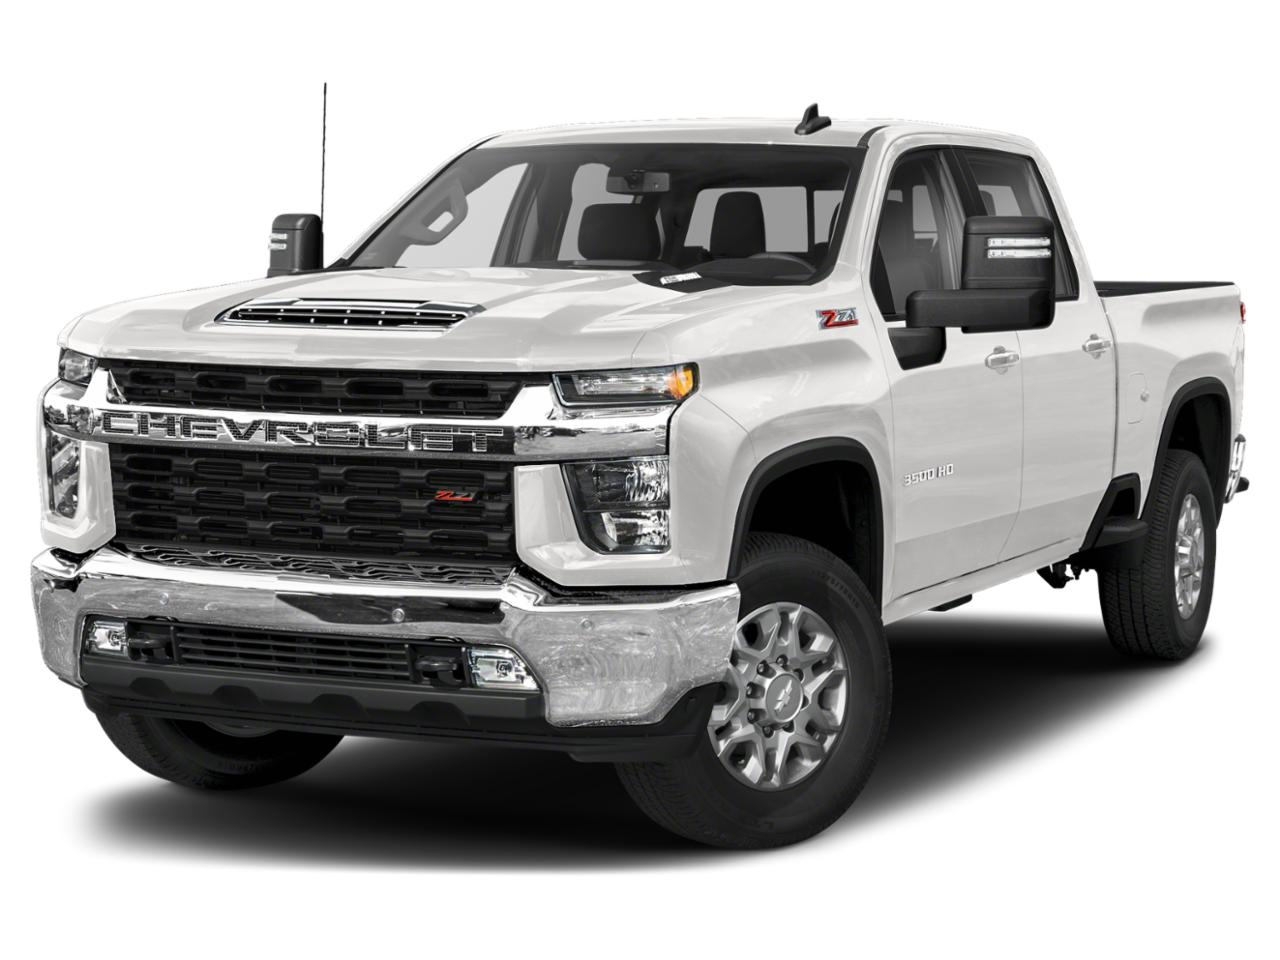 2021 Chevrolet Silverado 3500HD Vehicle Photo in Phoenix, AZ 85014